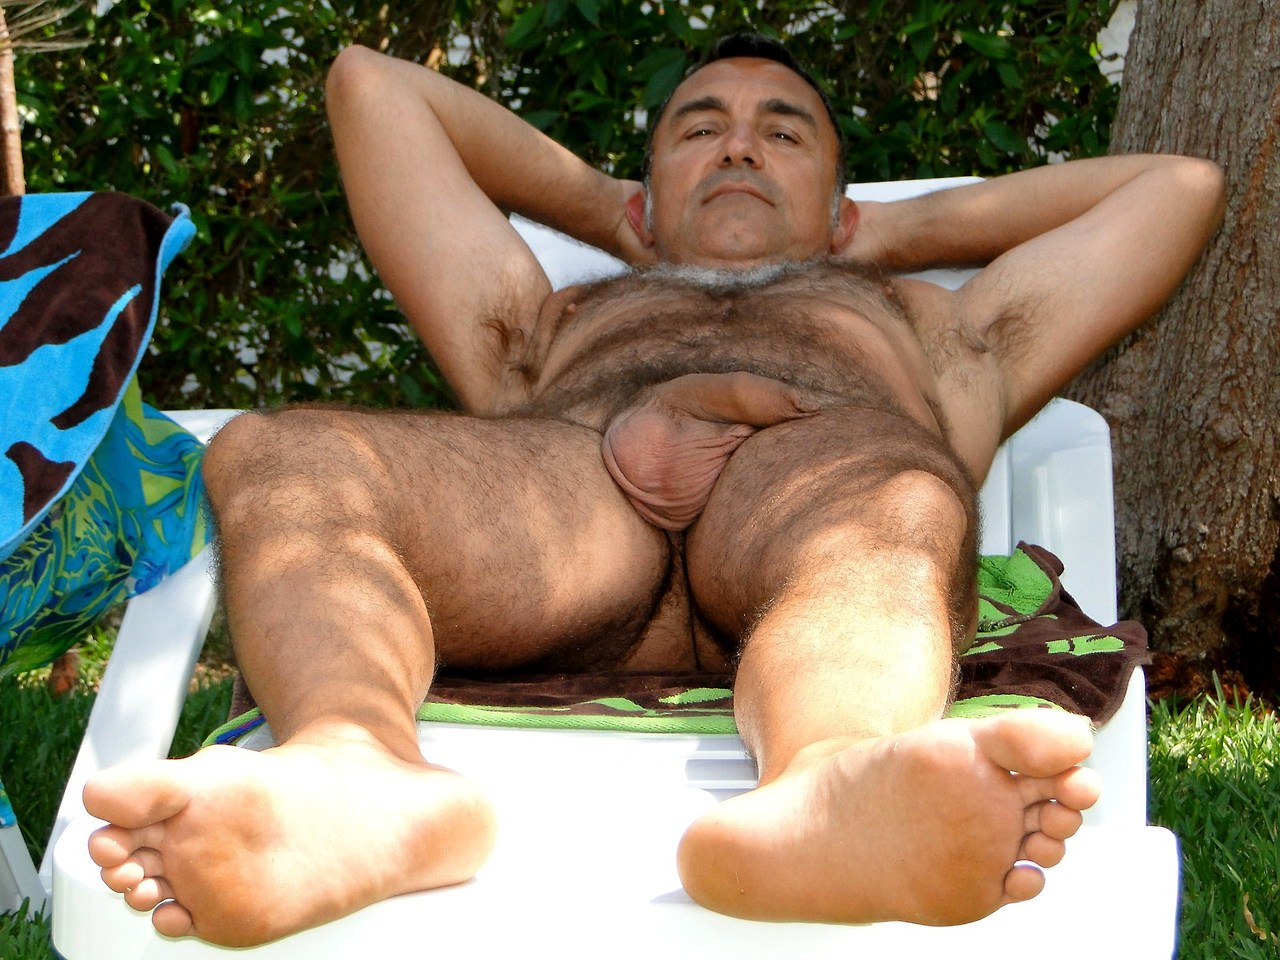 Wally recommends Messy spank freckles double penetration